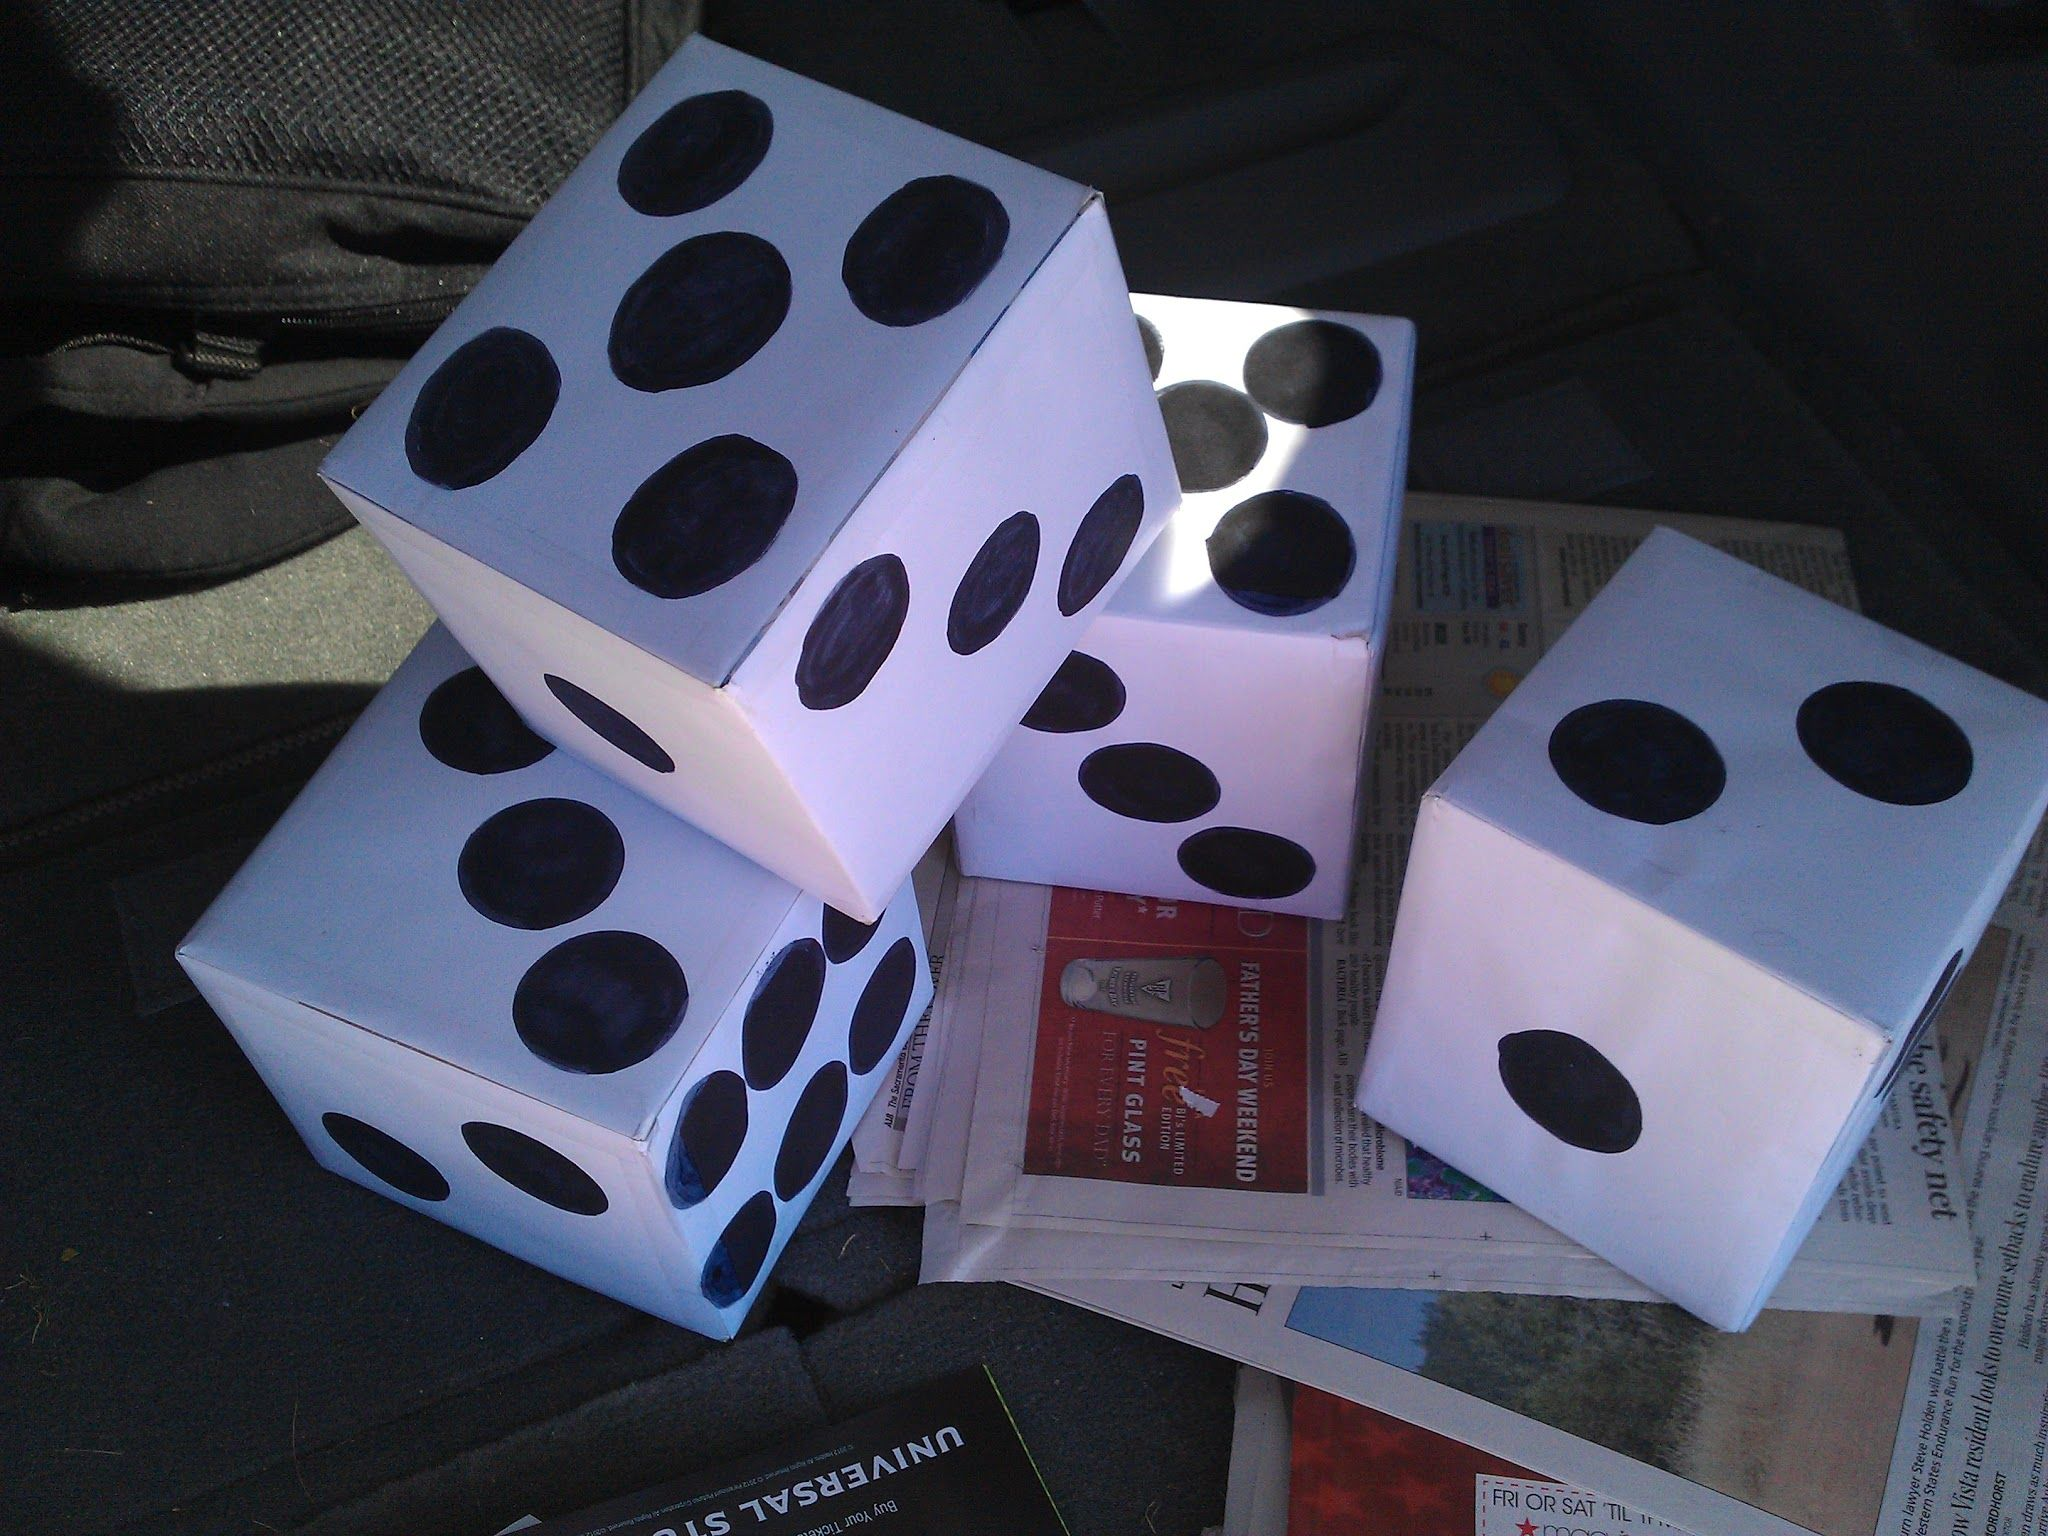 Easy to make dice- cover kleenex box with printer paper and print out die dots or draw them on :)